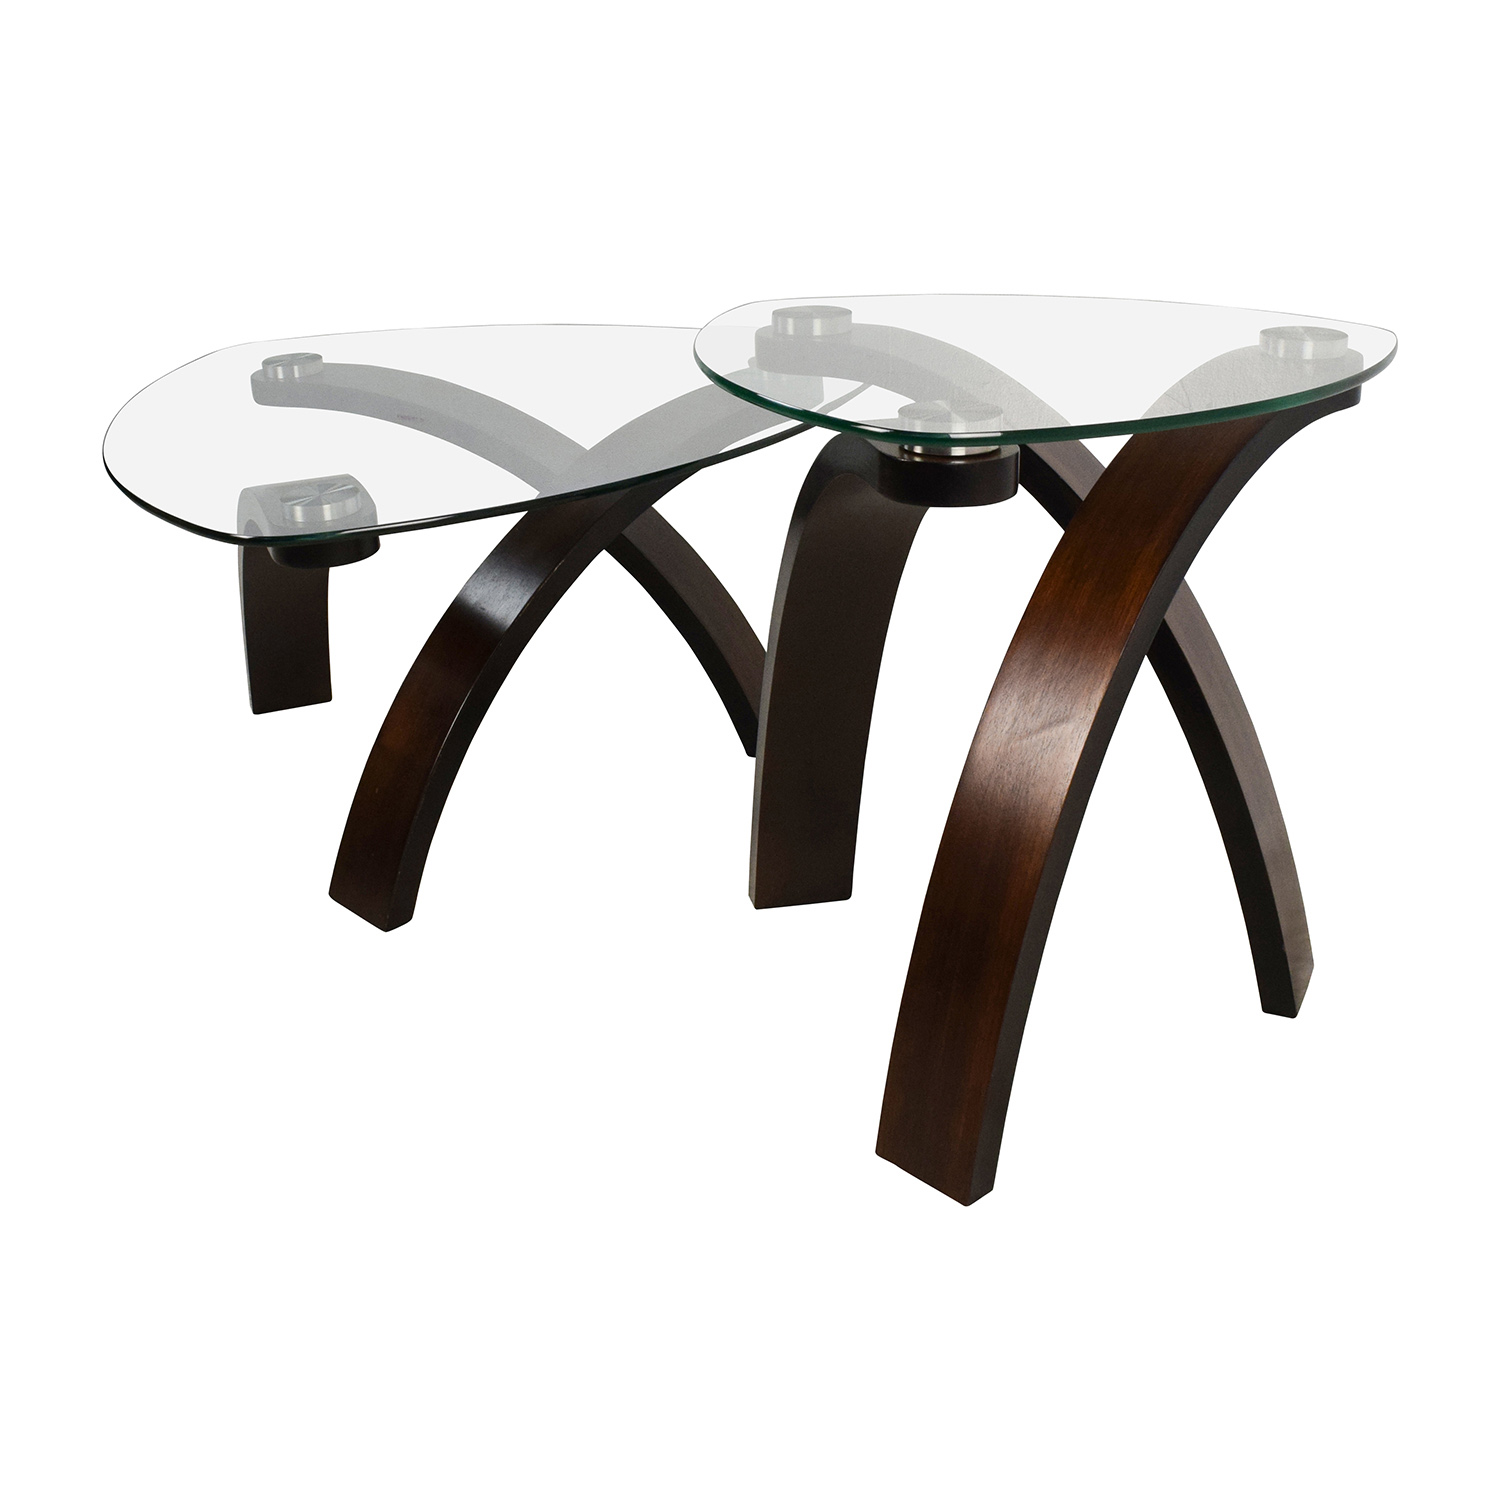 51 Off Raymour And Flanigan Raymour Flanigan Allure Coffee Table Set Tables